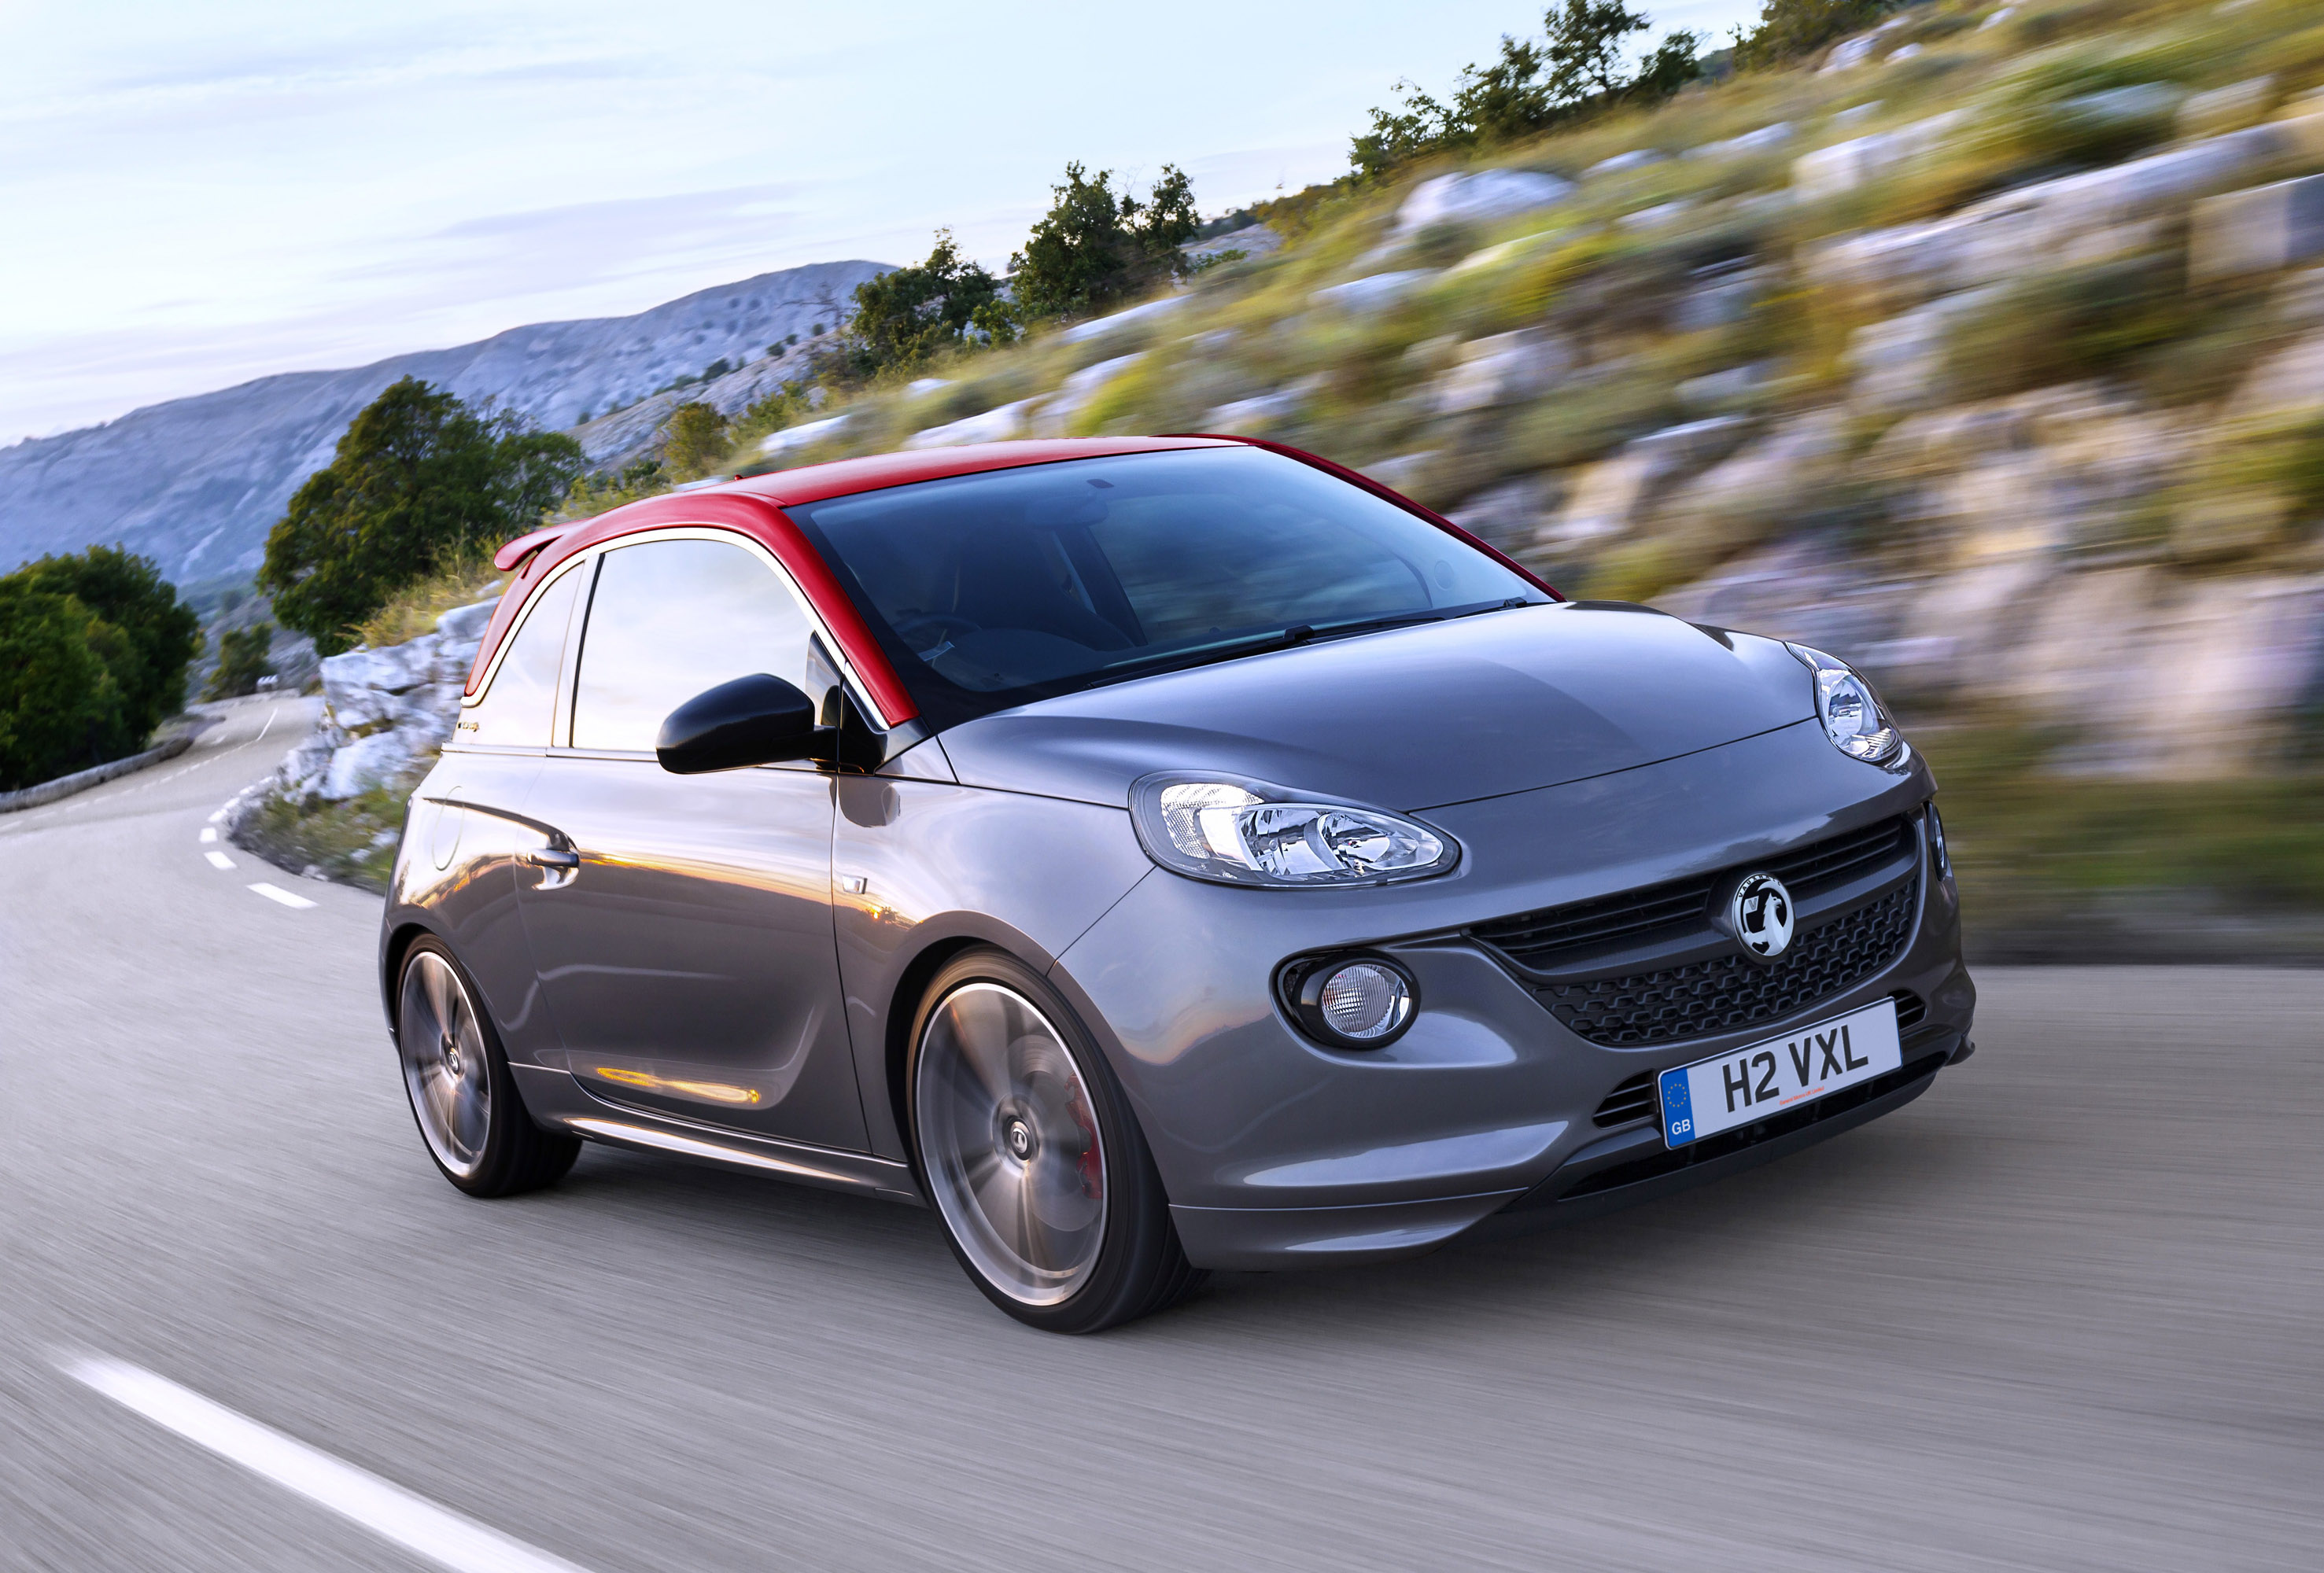 2015 opel adam s goes on sale in europe. Black Bedroom Furniture Sets. Home Design Ideas